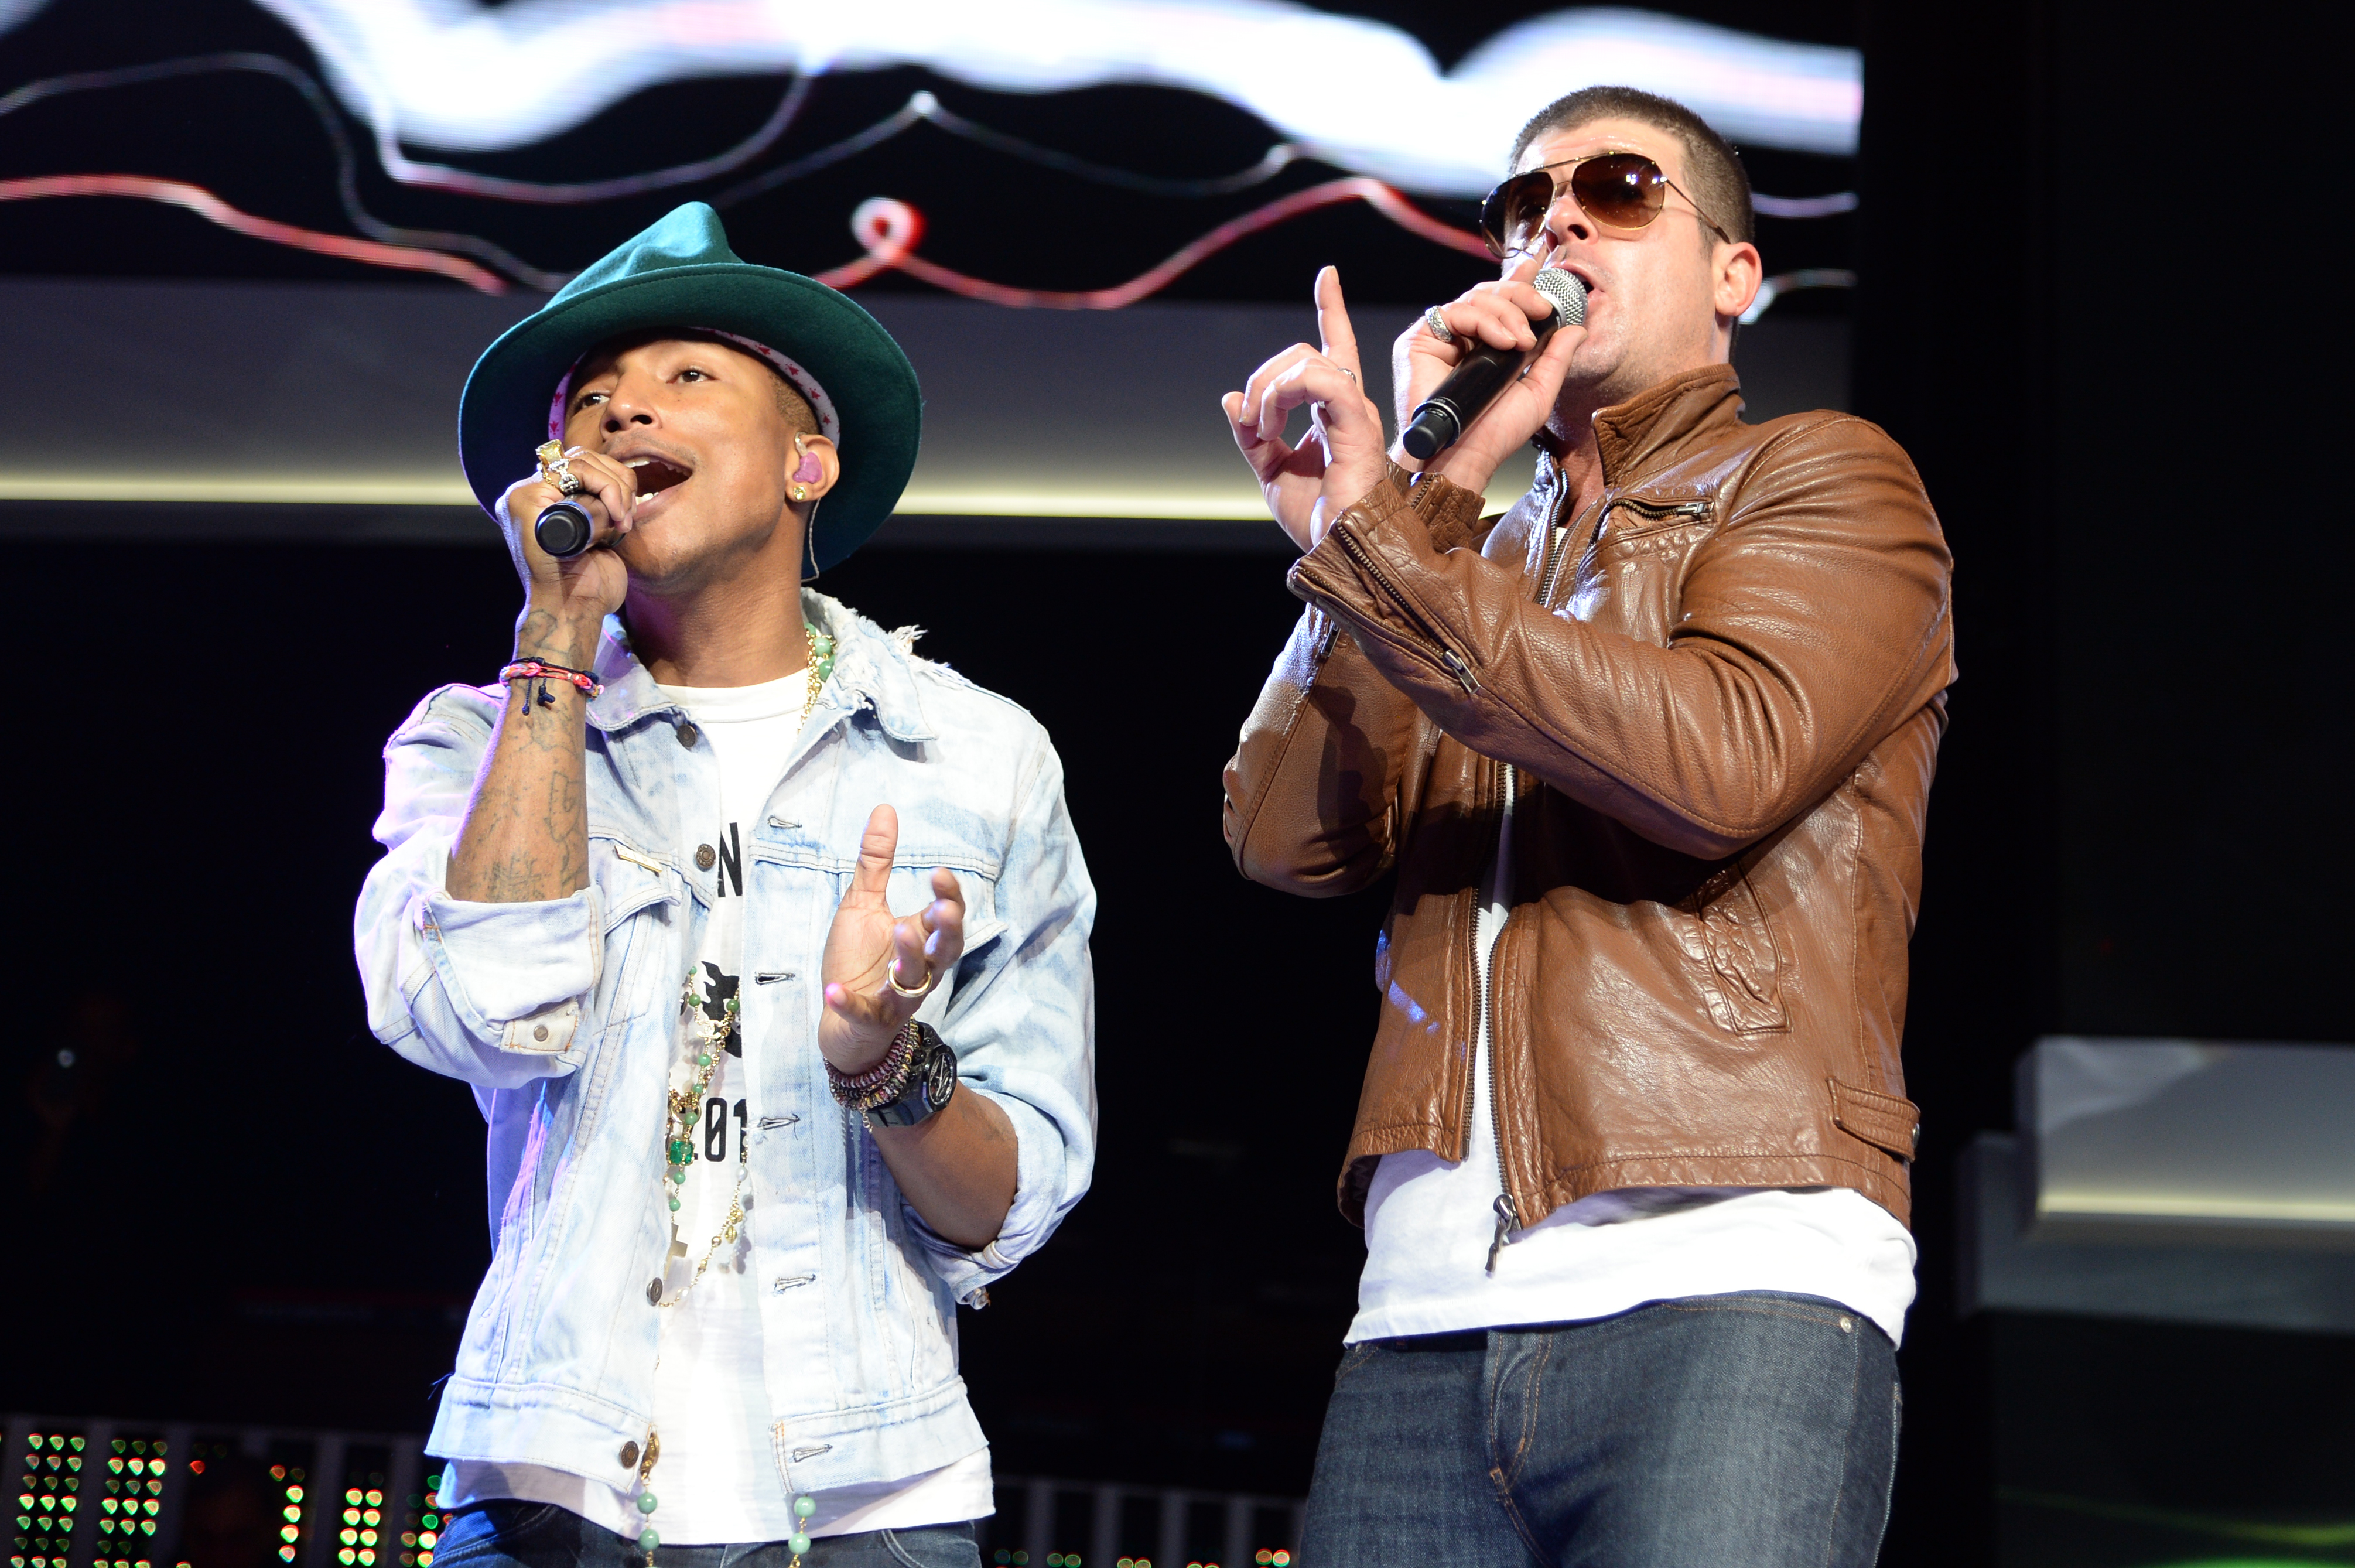 Pharrell Williams and Robin Thicke perform during the Walmart 2014 annual shareholders meeting on June 6, 2014 at Bud Walton Arena at the University of Arkansas in Fayetteville, Arkansas.